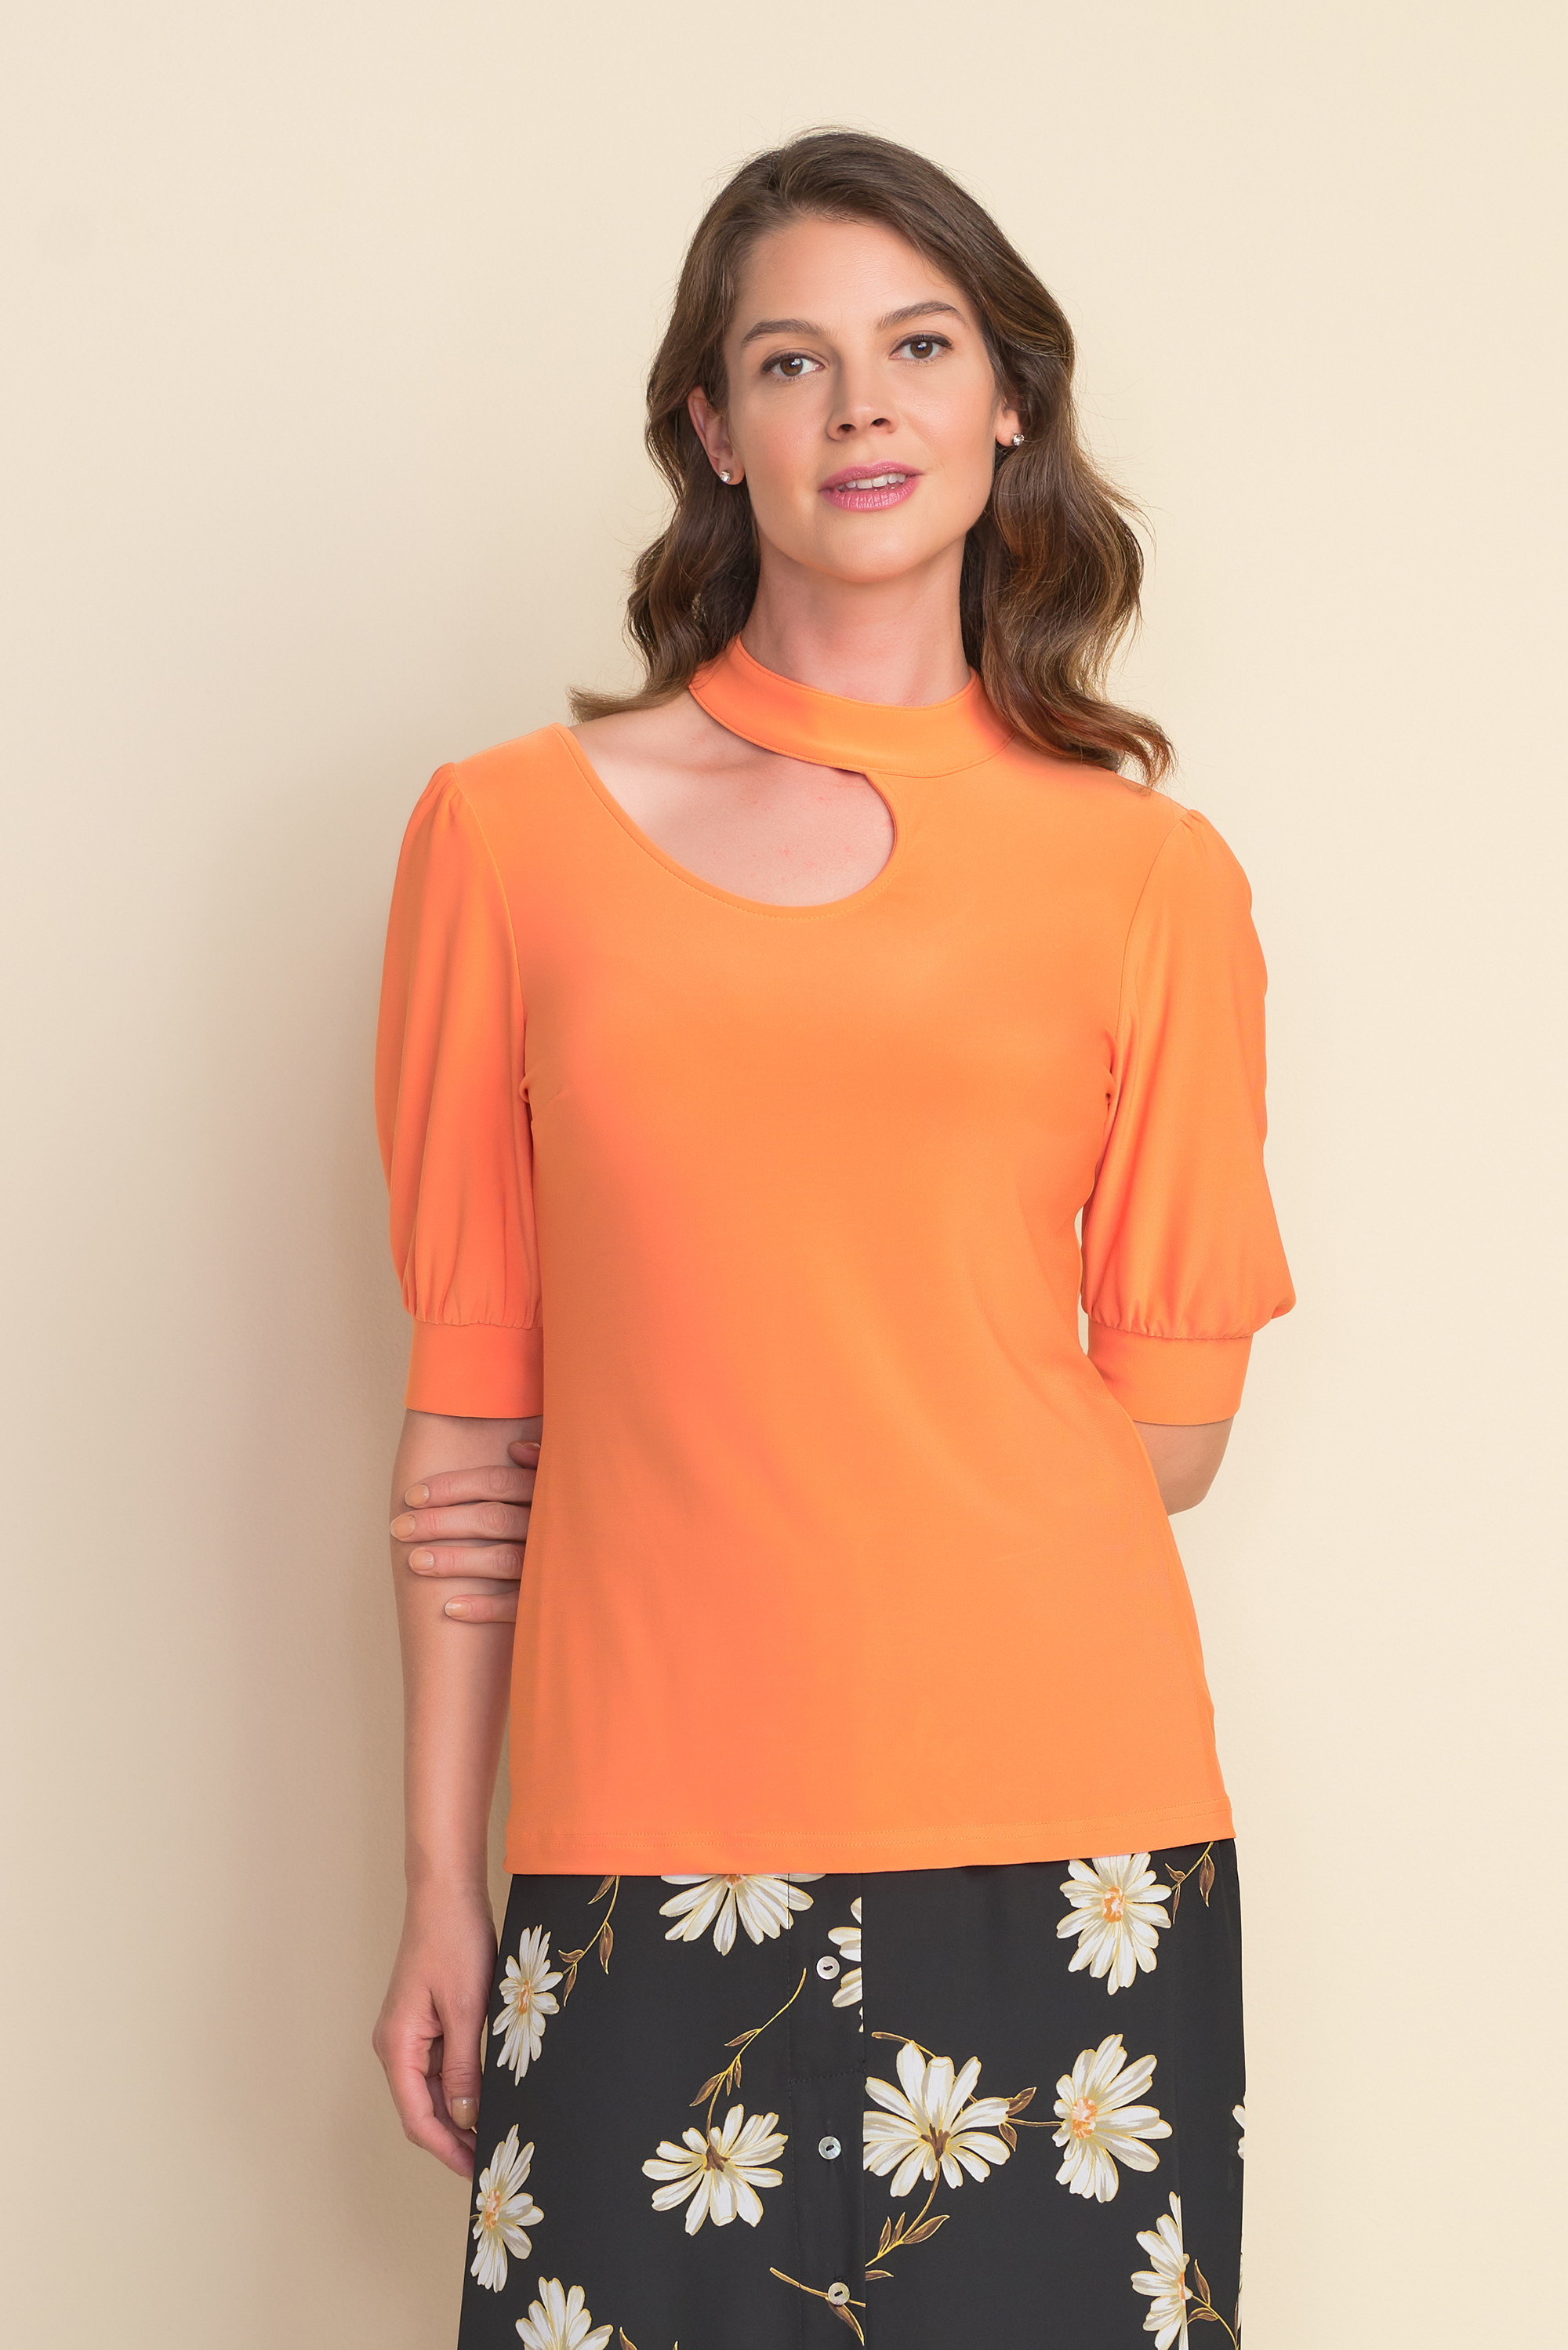 Joseph Ribkoff Womens Top Style 212277, 2 Colors Available